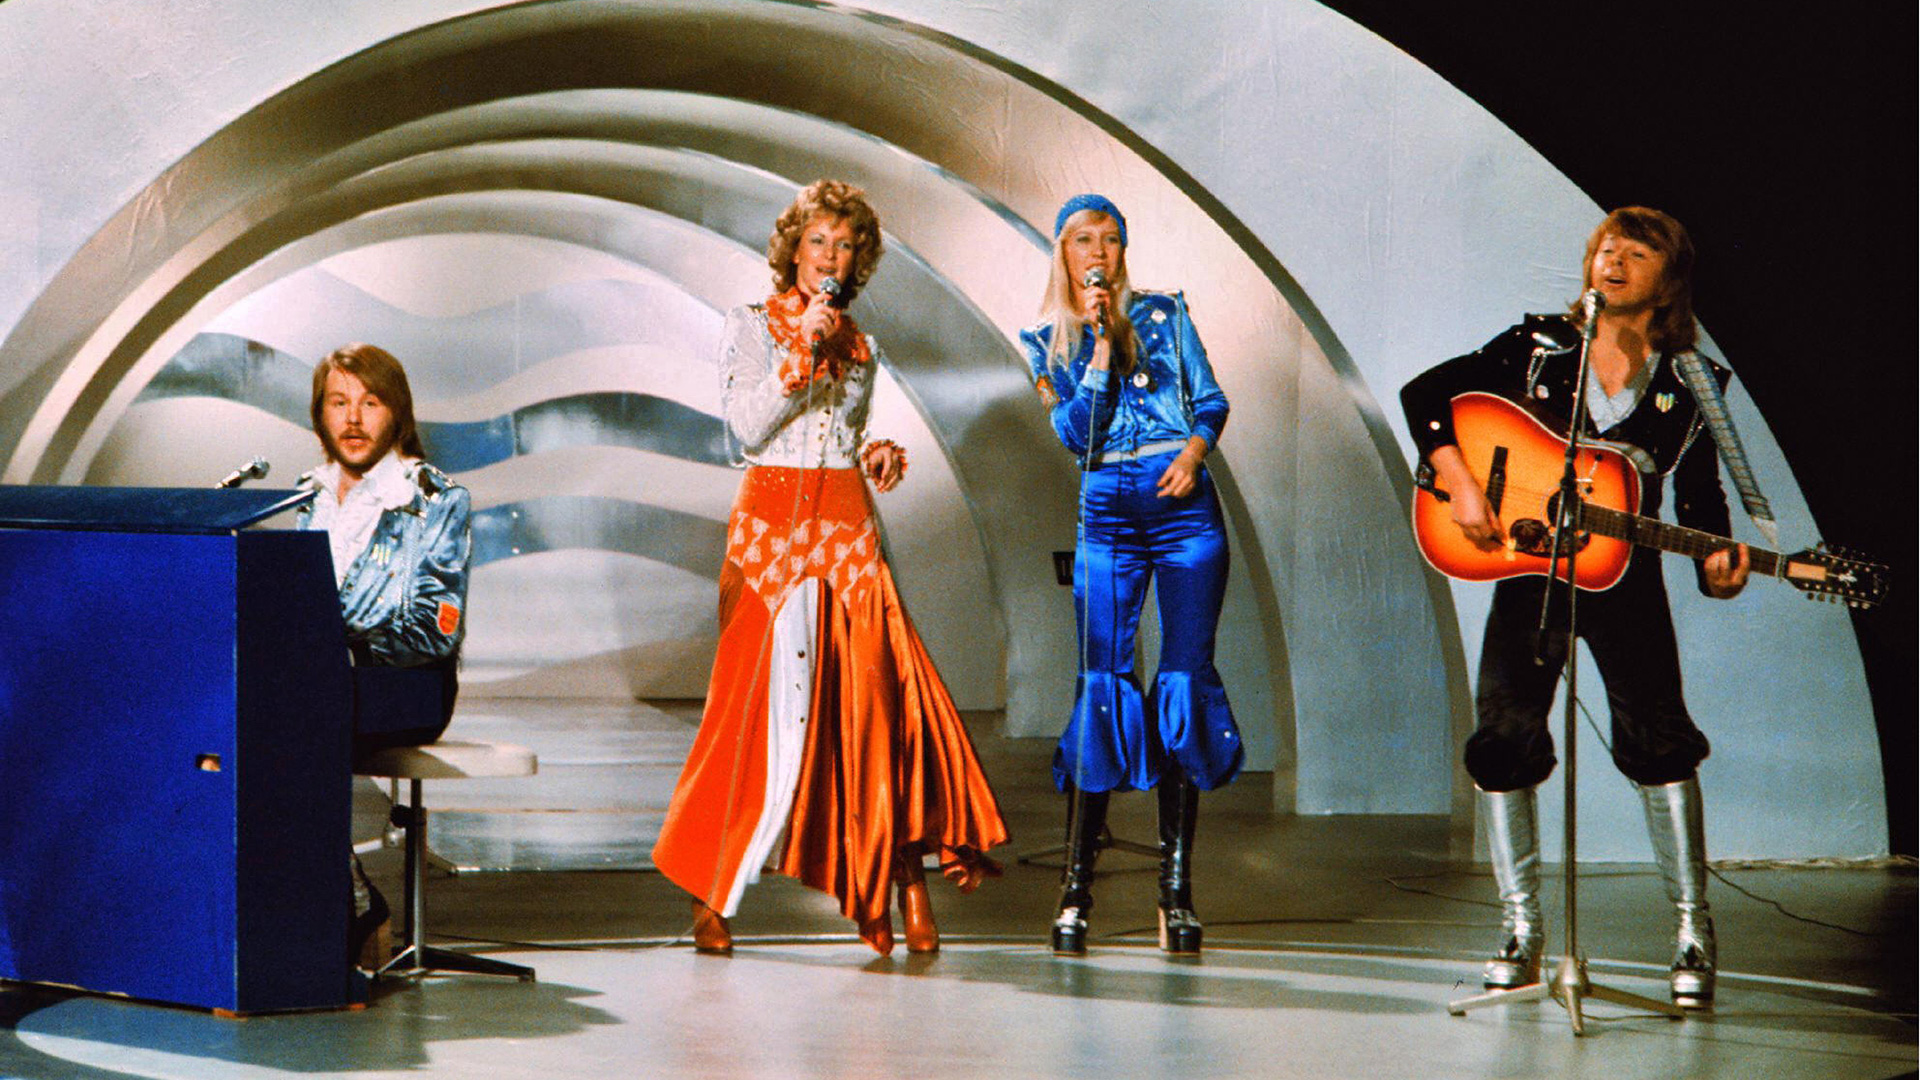 """April 6, 1974: ABBA Won the Eurovision Song Contest for """"Waterloo,"""" Launching Their International Career"""